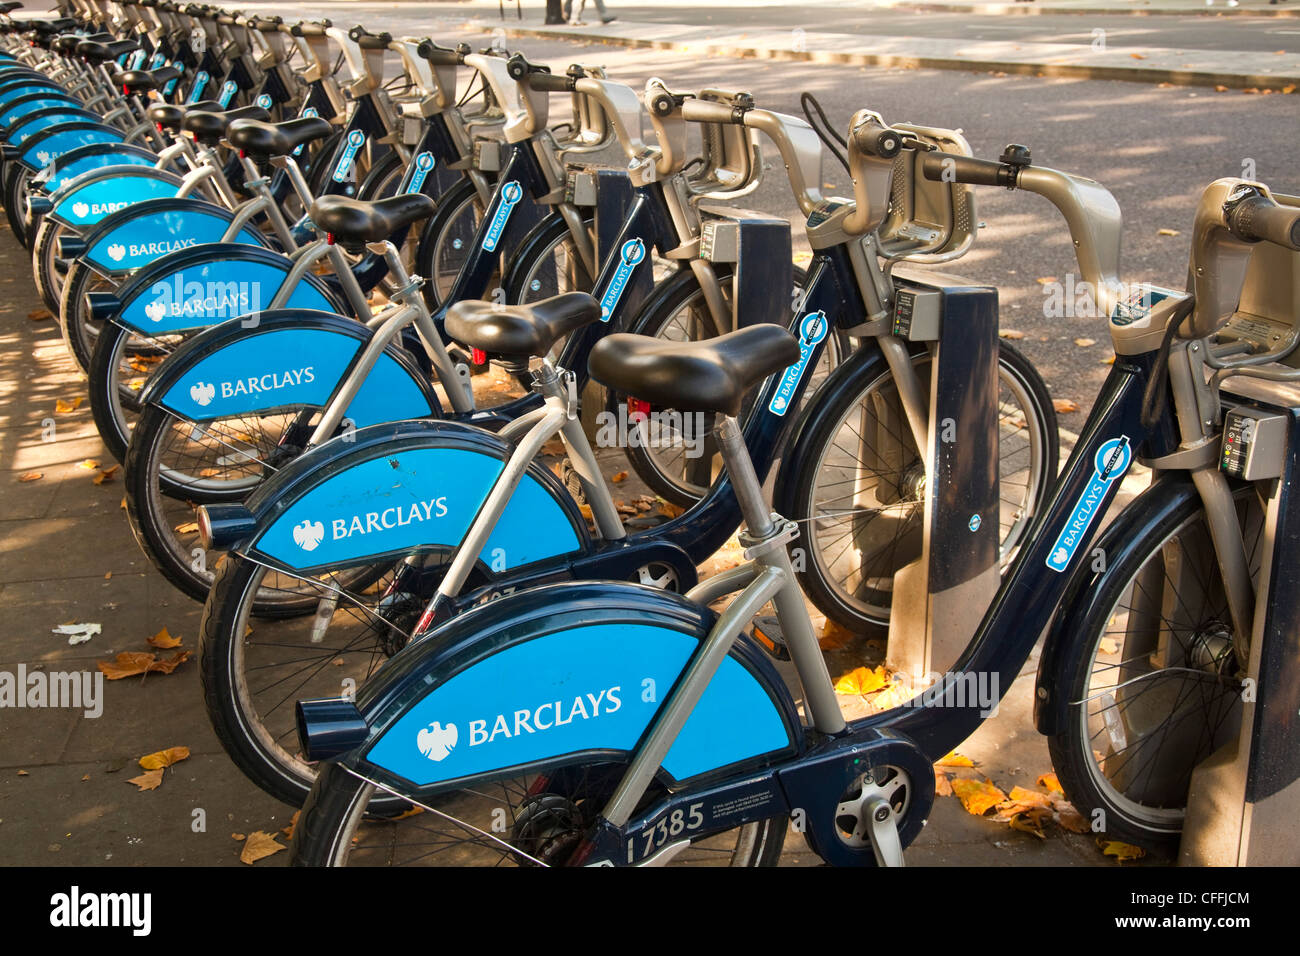 Bikes available for hourly rent in London - Stock Image